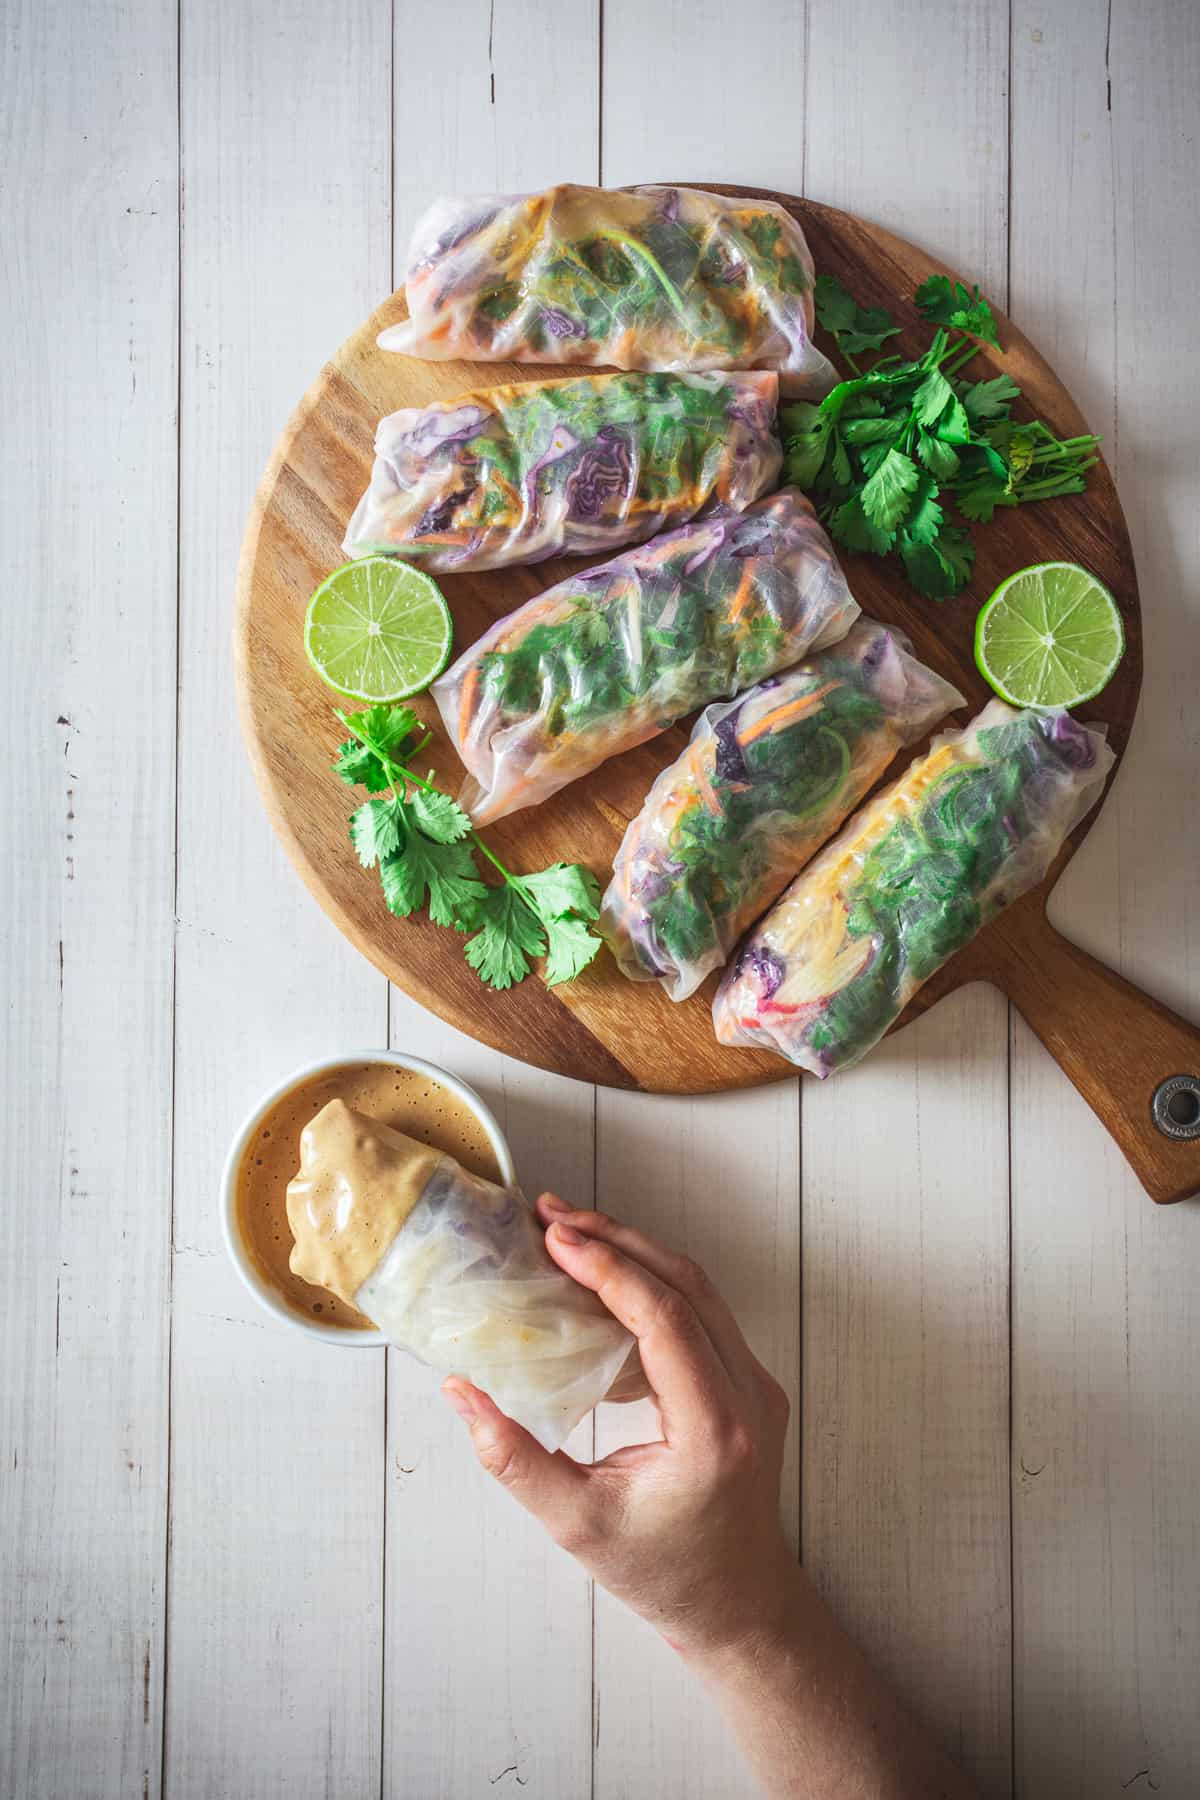 dipping spring roll into sauce